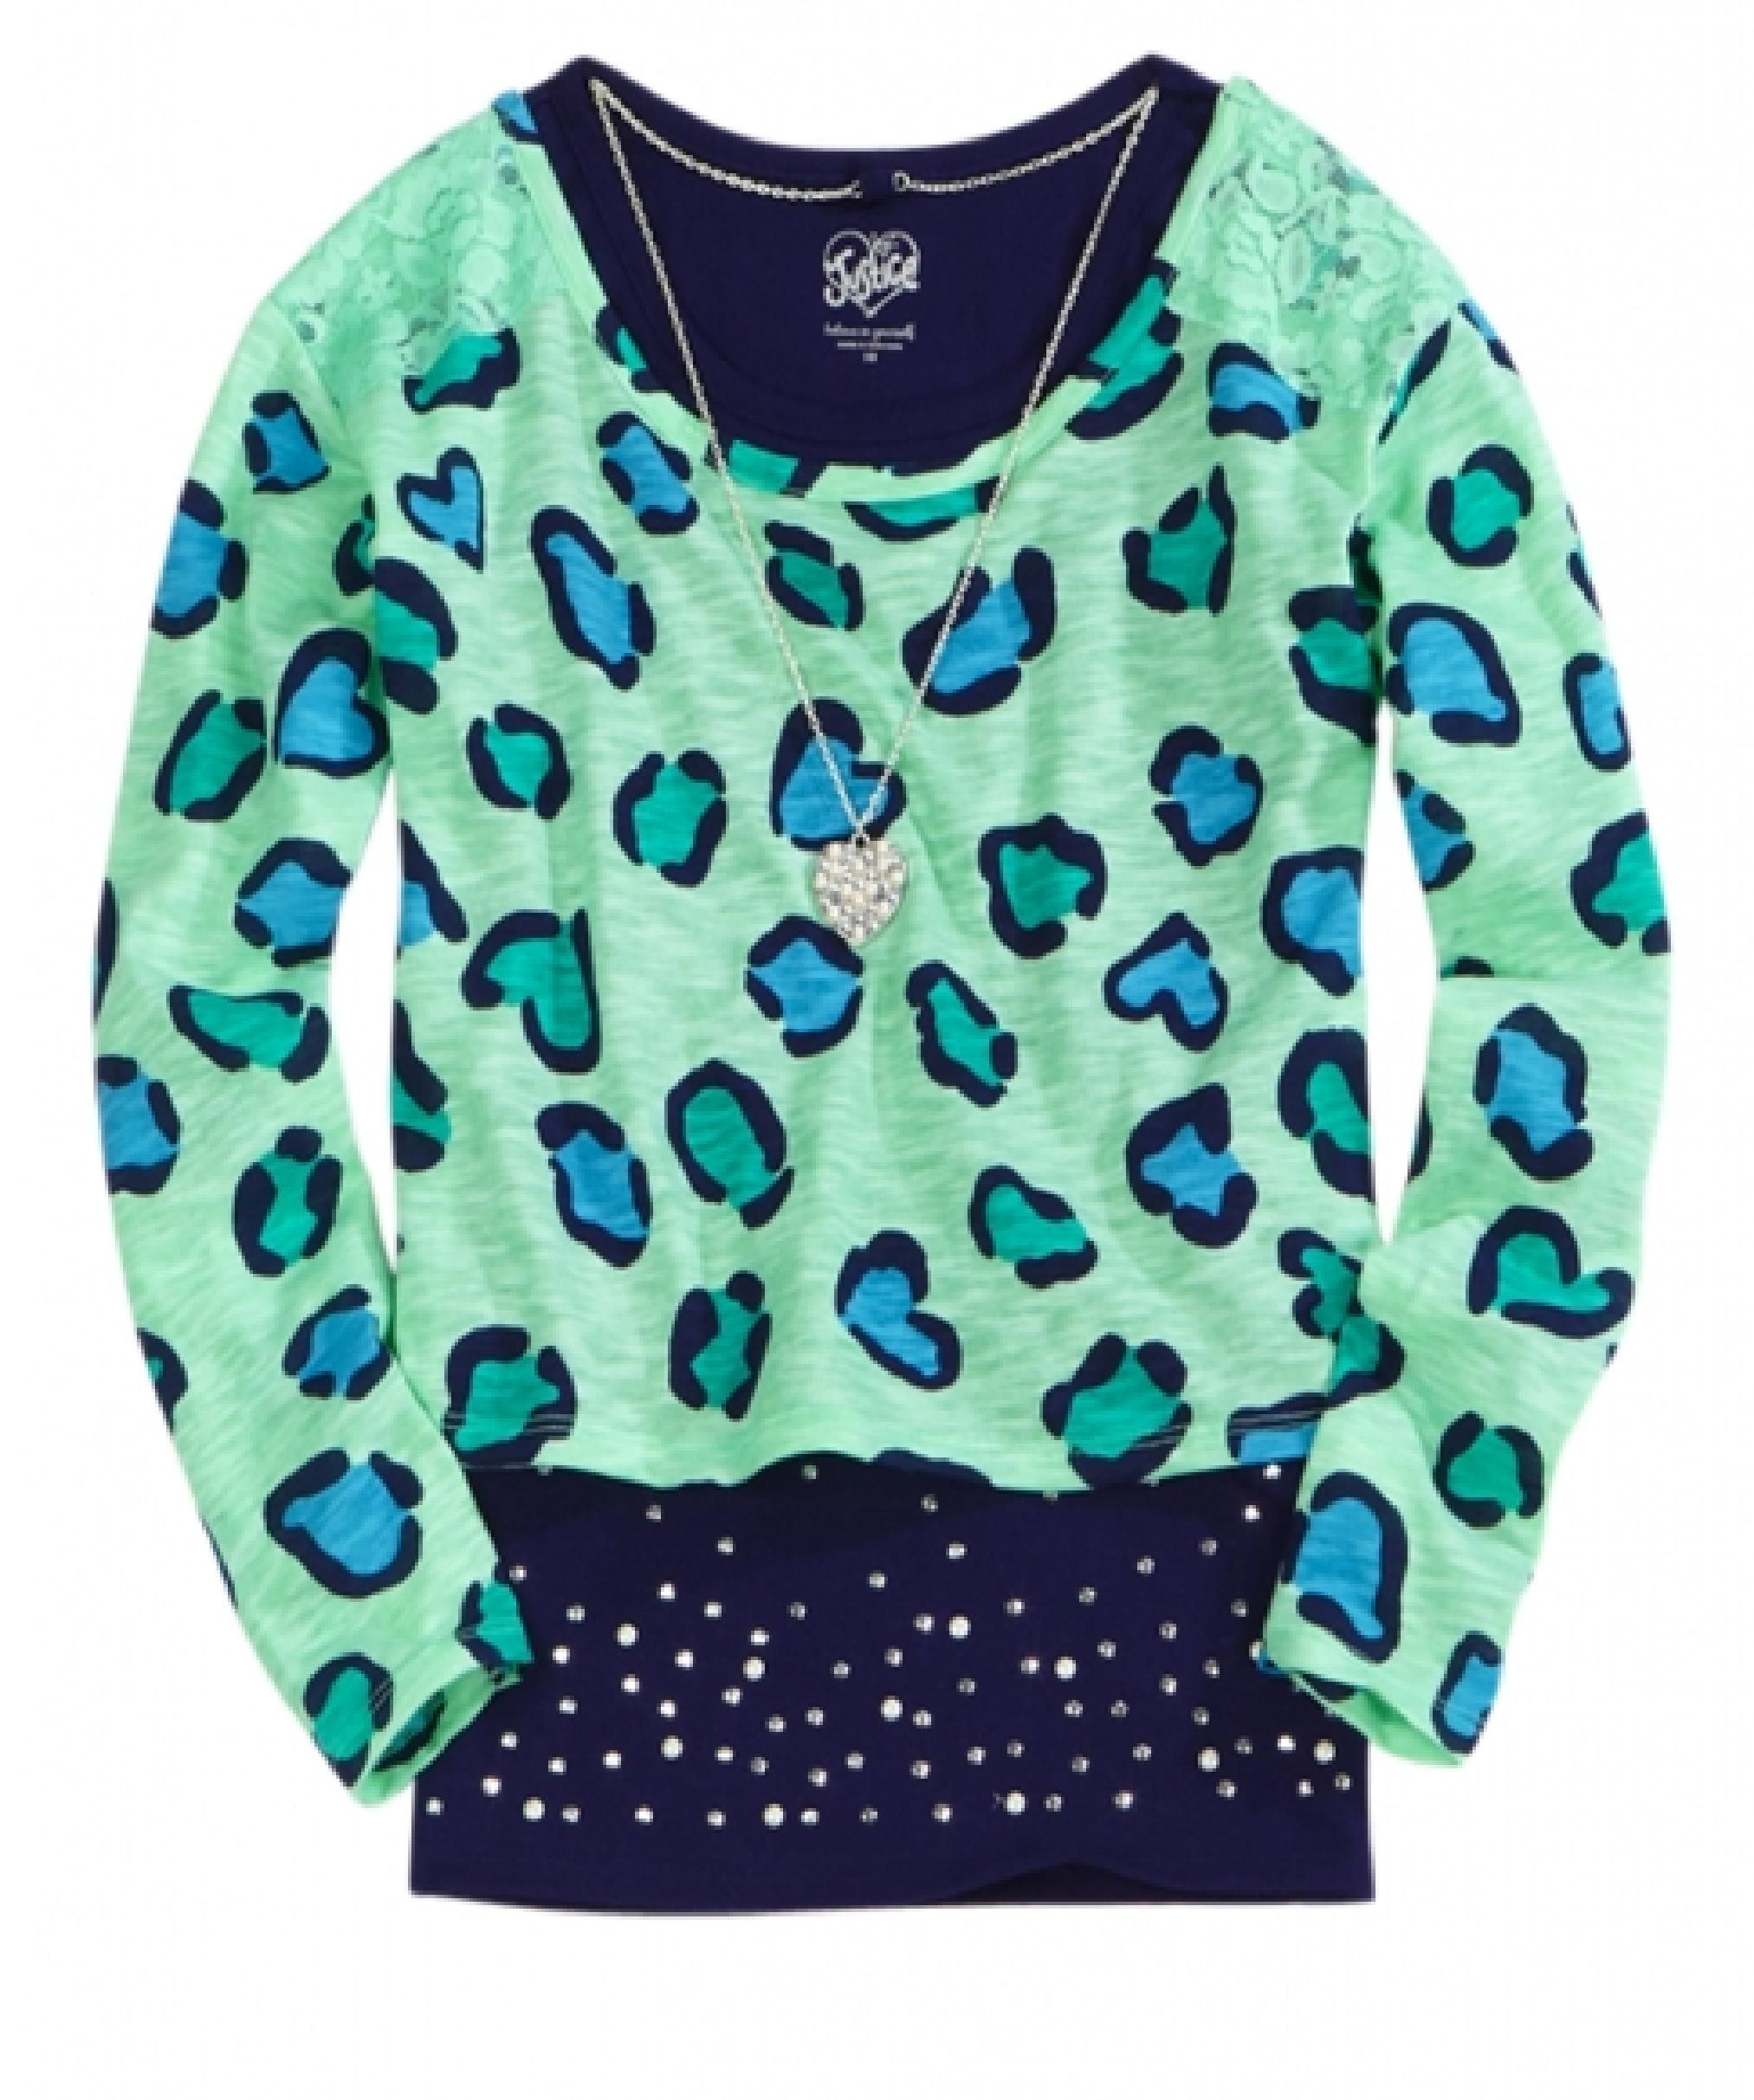 1c3ec2ca1 Justice girls clothing all over leopard print top | Justice Print ...